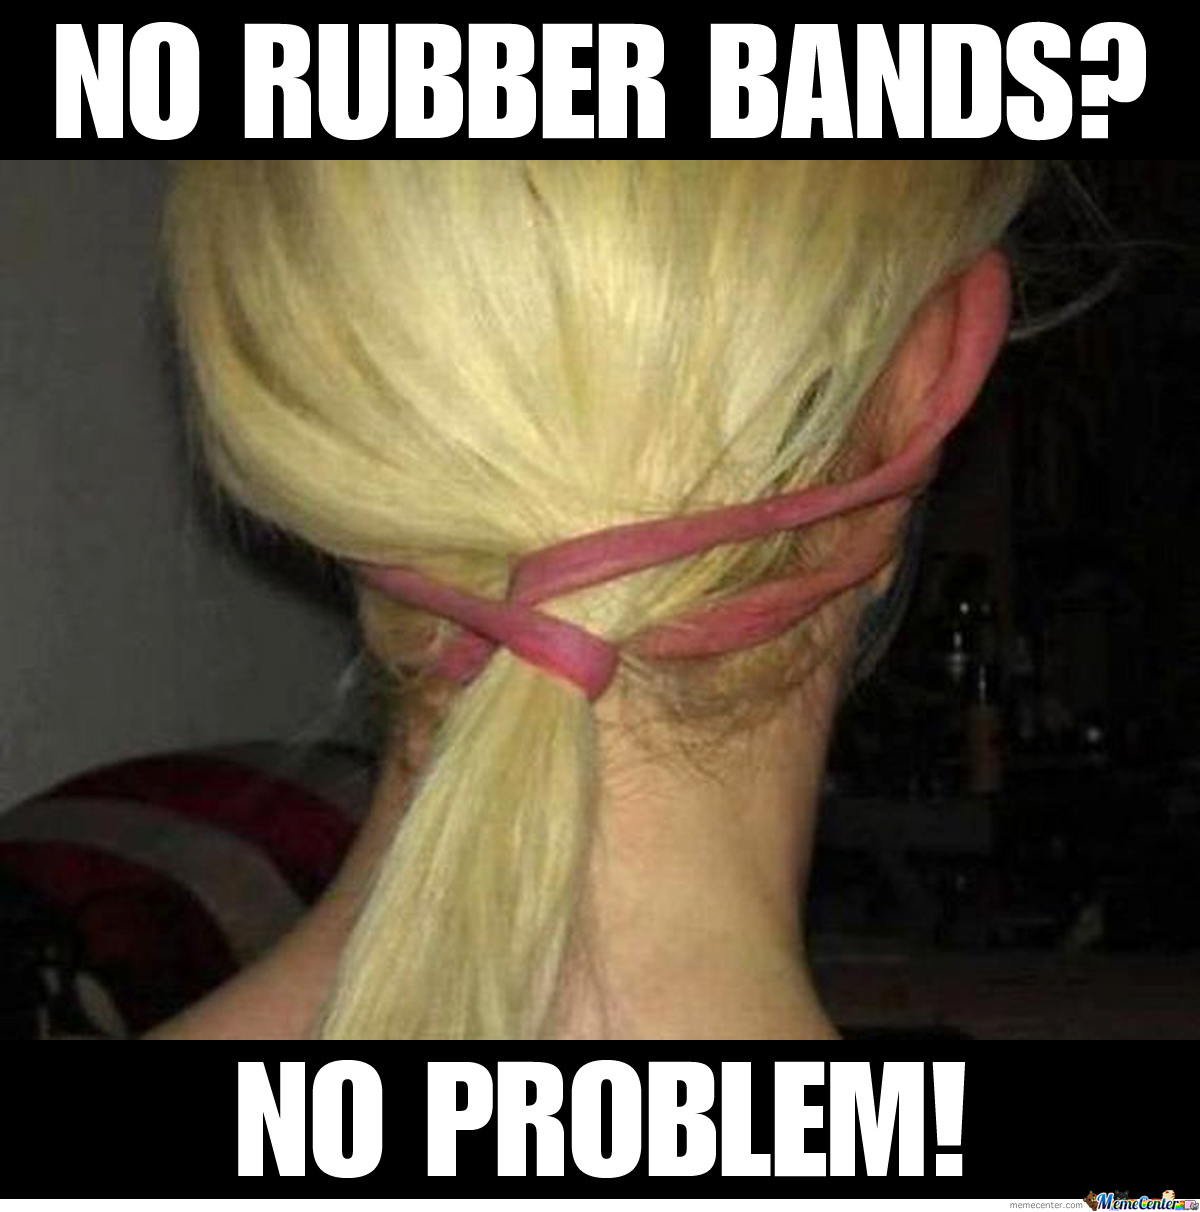 No Rubber Bands?